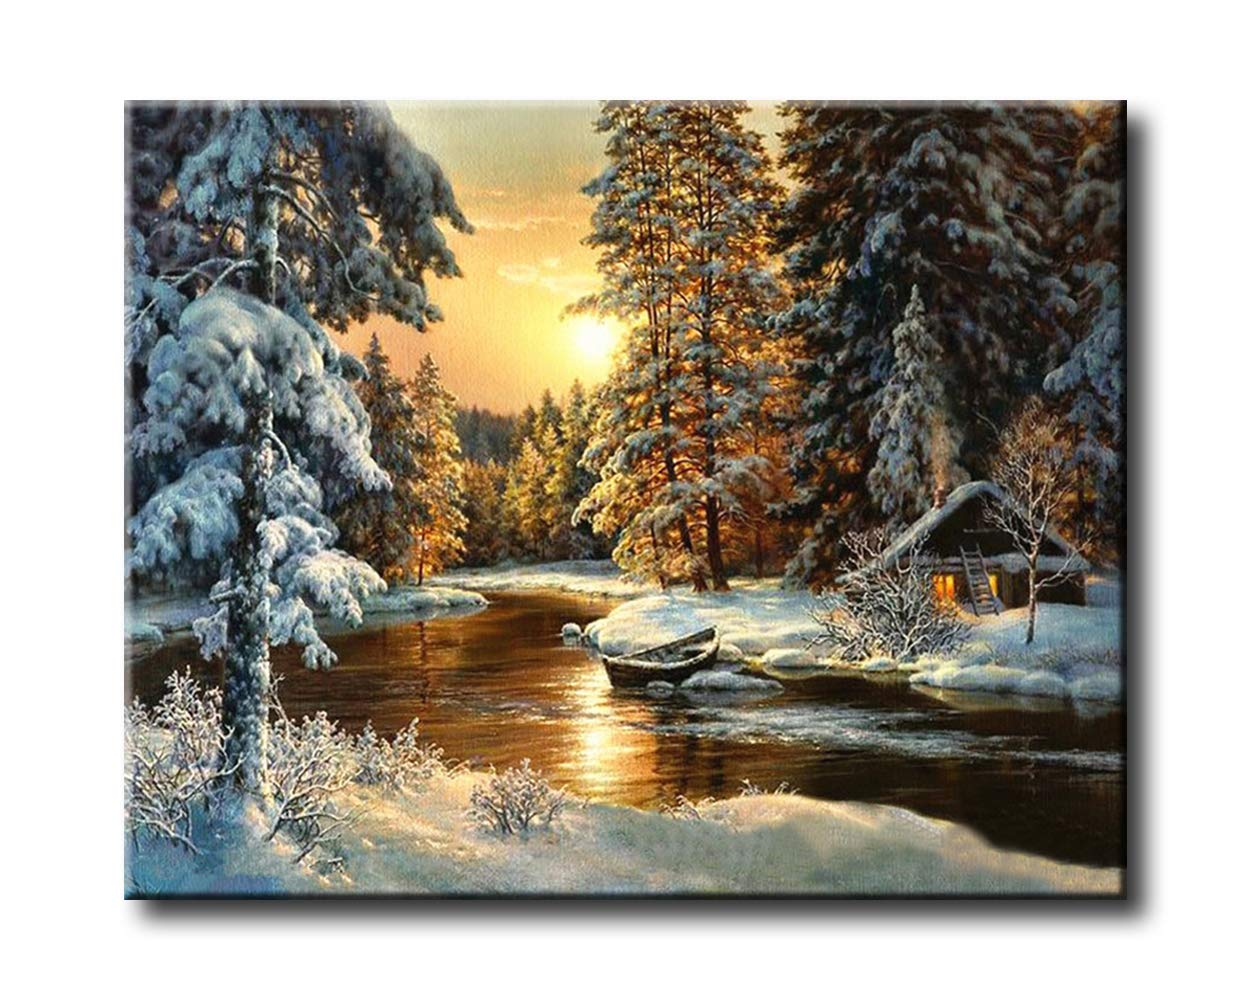 Shukqueen Diy Oil Painting Acrylic Painting-Snow Cabin in the Sunset 16X20 Inch Frameless Adults Paint by Number Kits